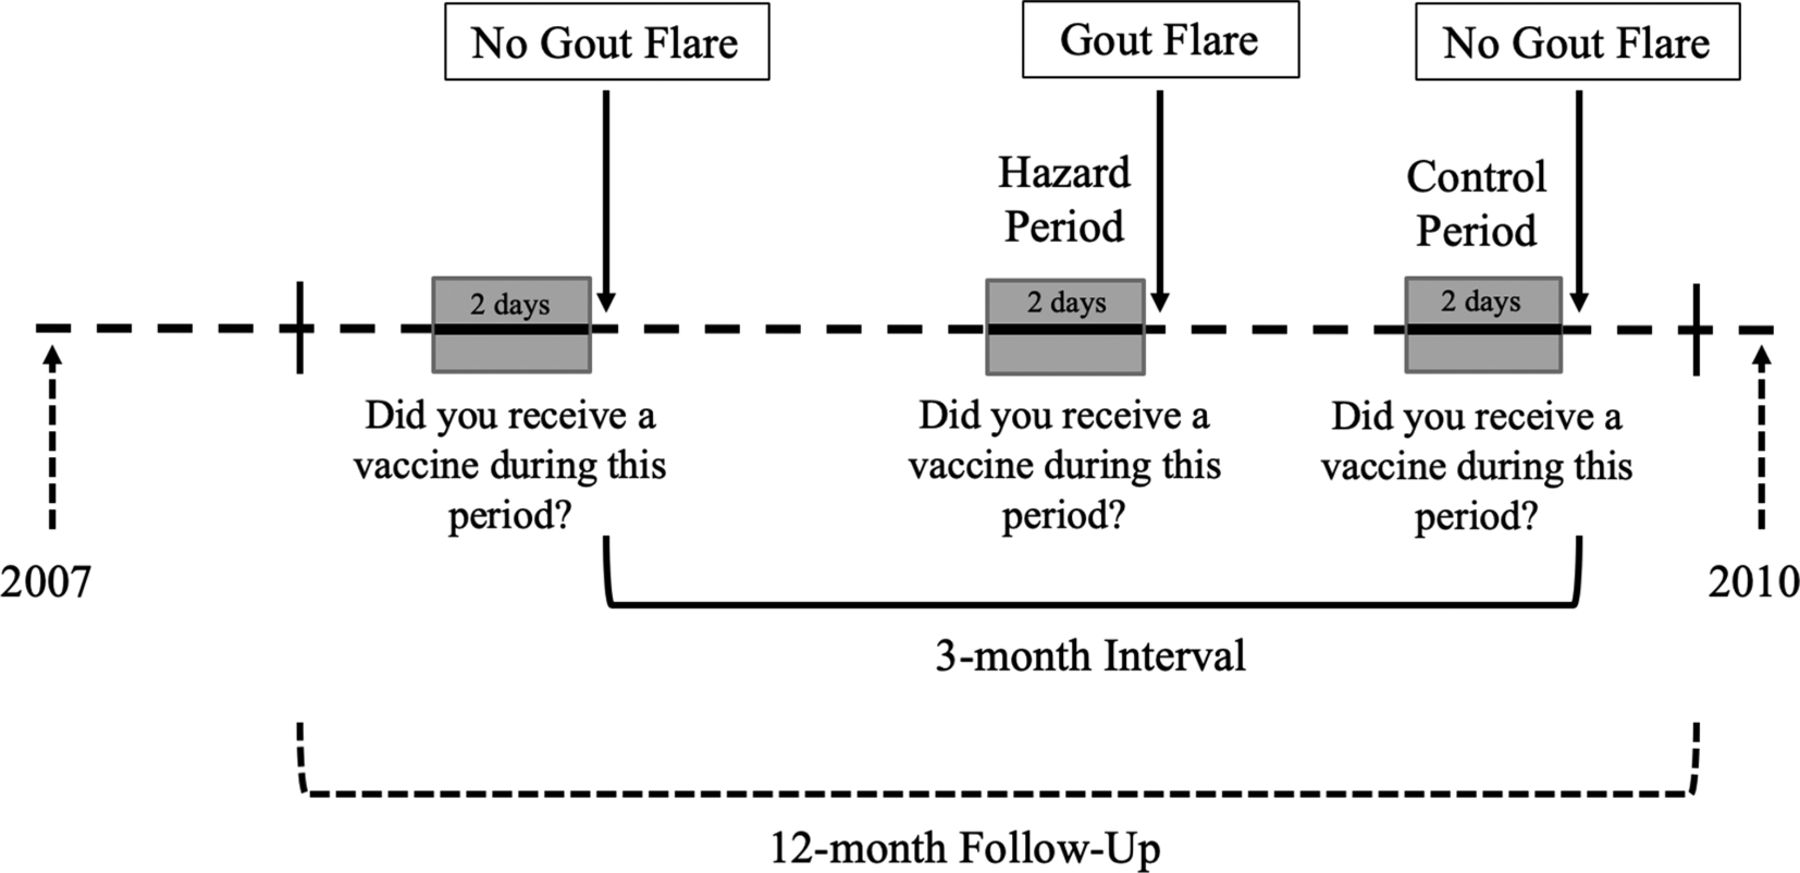 Risk of gout flares after vaccination: a prospective case cross-over